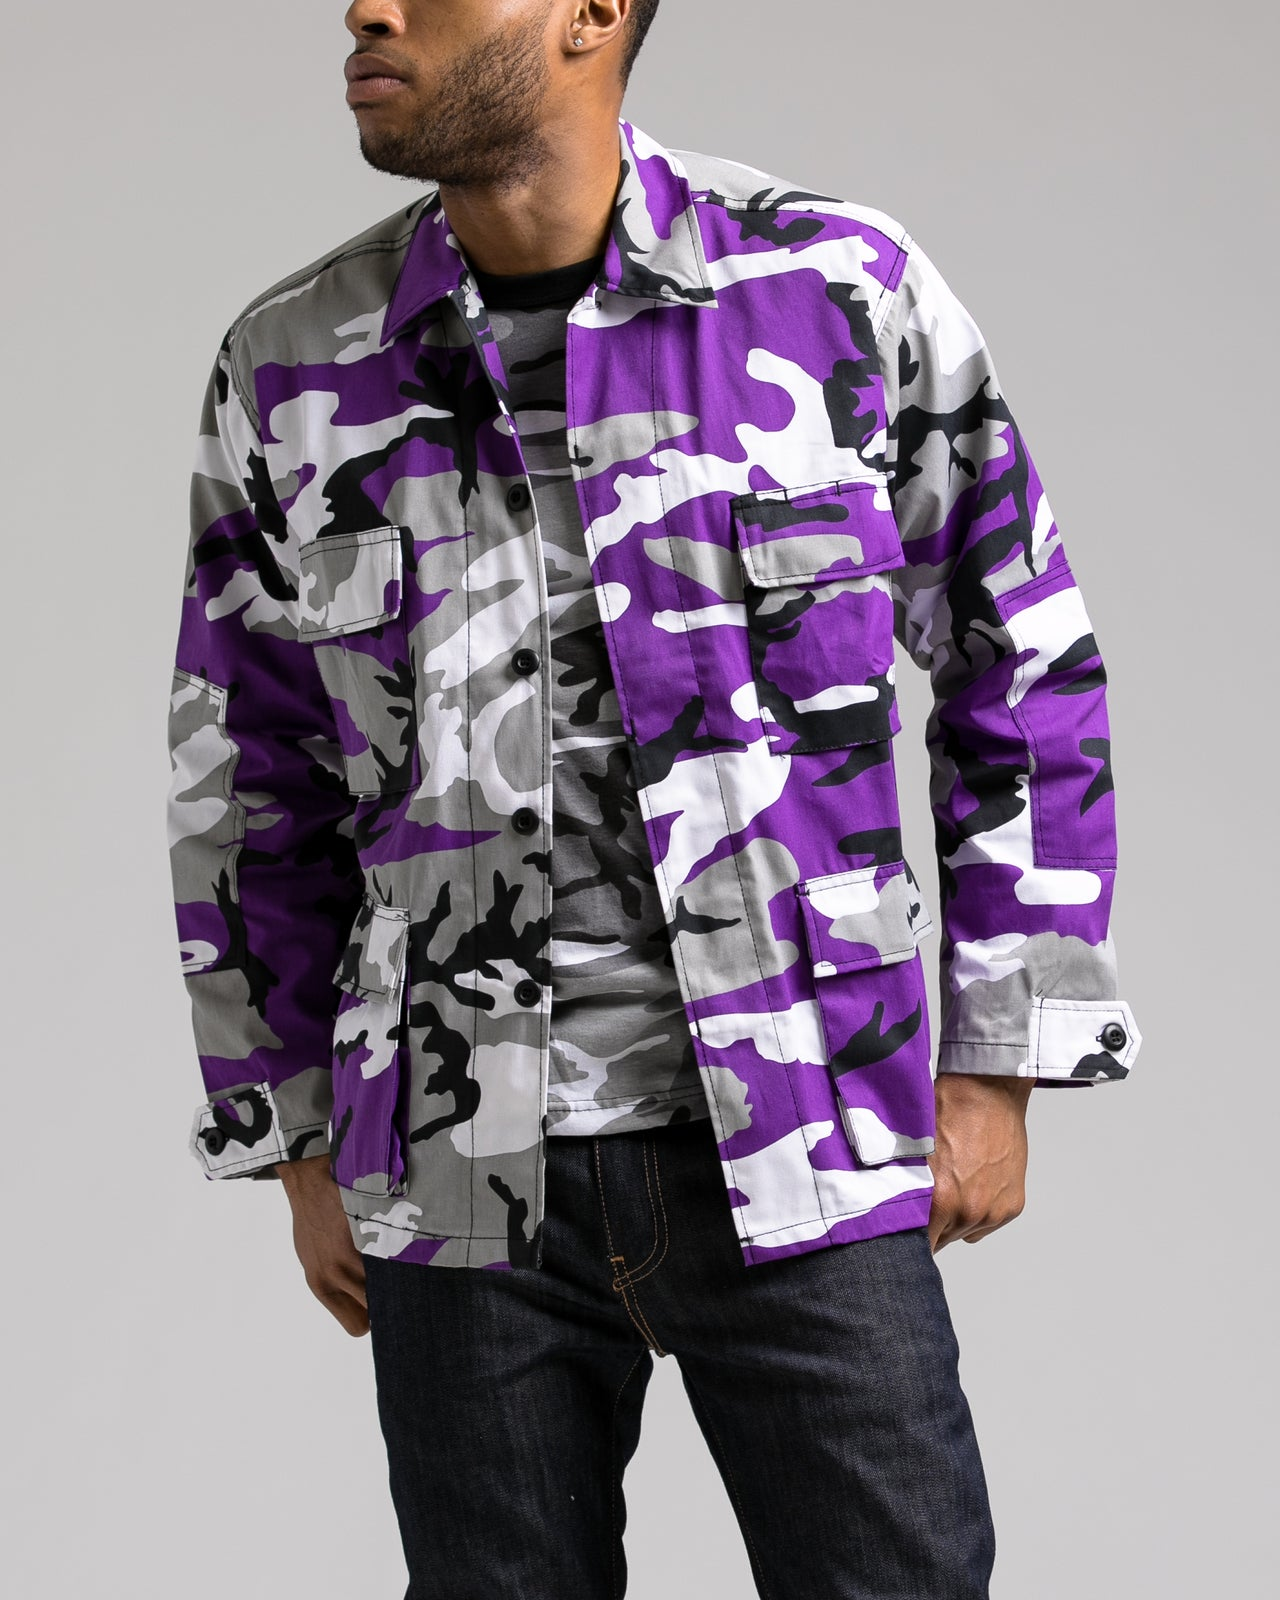 B.D.U. Shirt Jacket - Color: Ultra Violet Camo | Purple